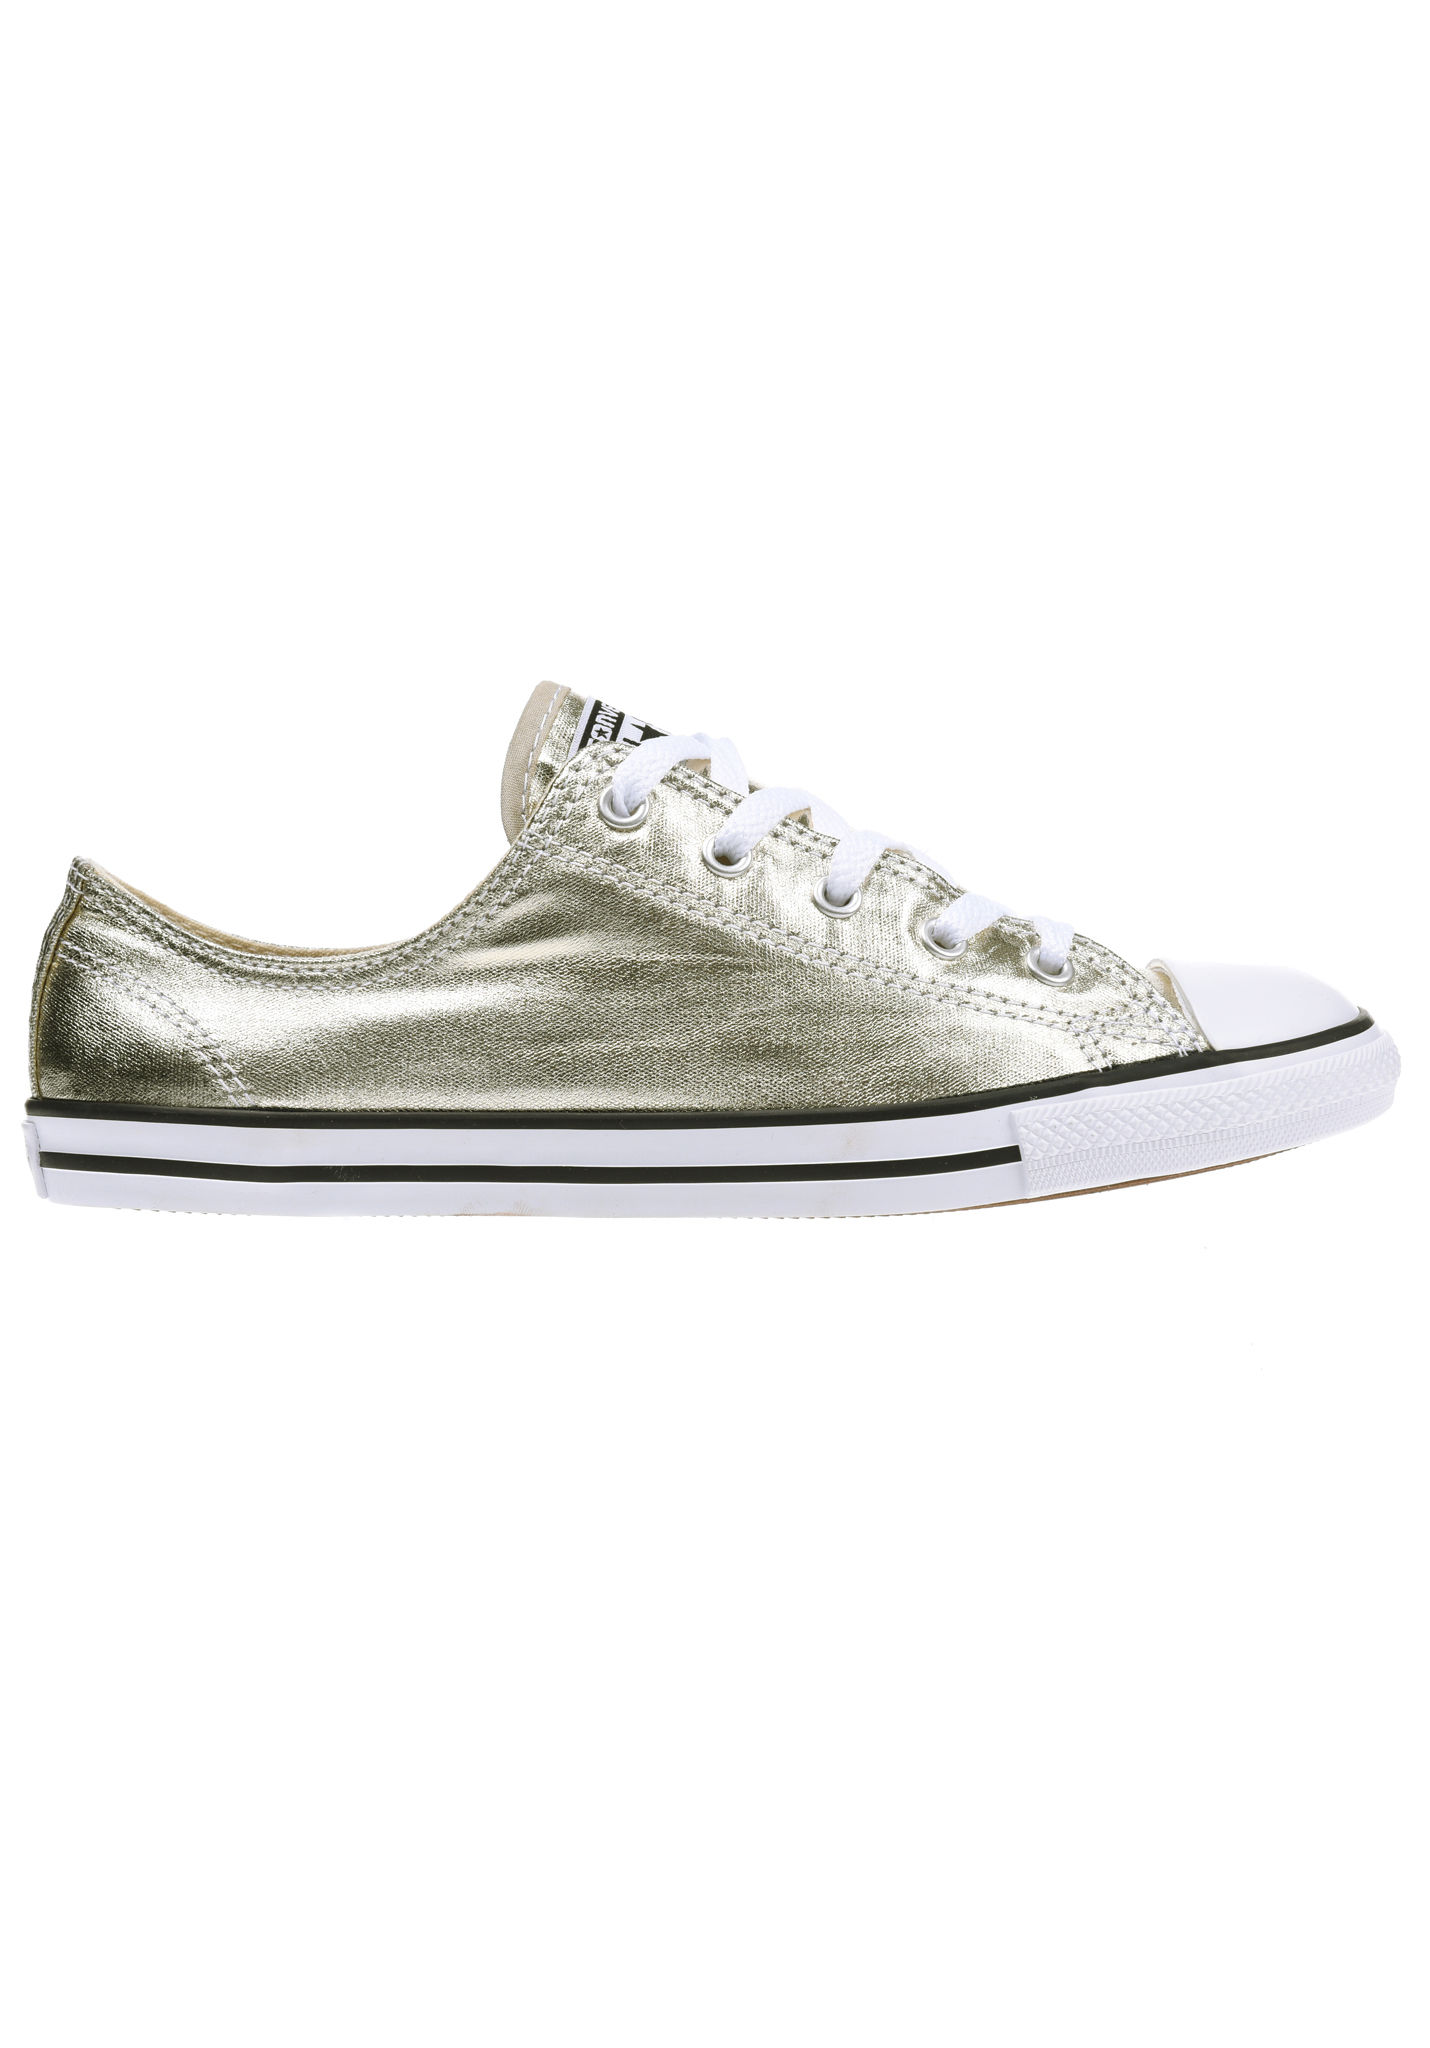 5219a002b57c Converse Chuck Taylor All Star Dainty Ox - Sneakers for Women - Gold -  Planet Sports